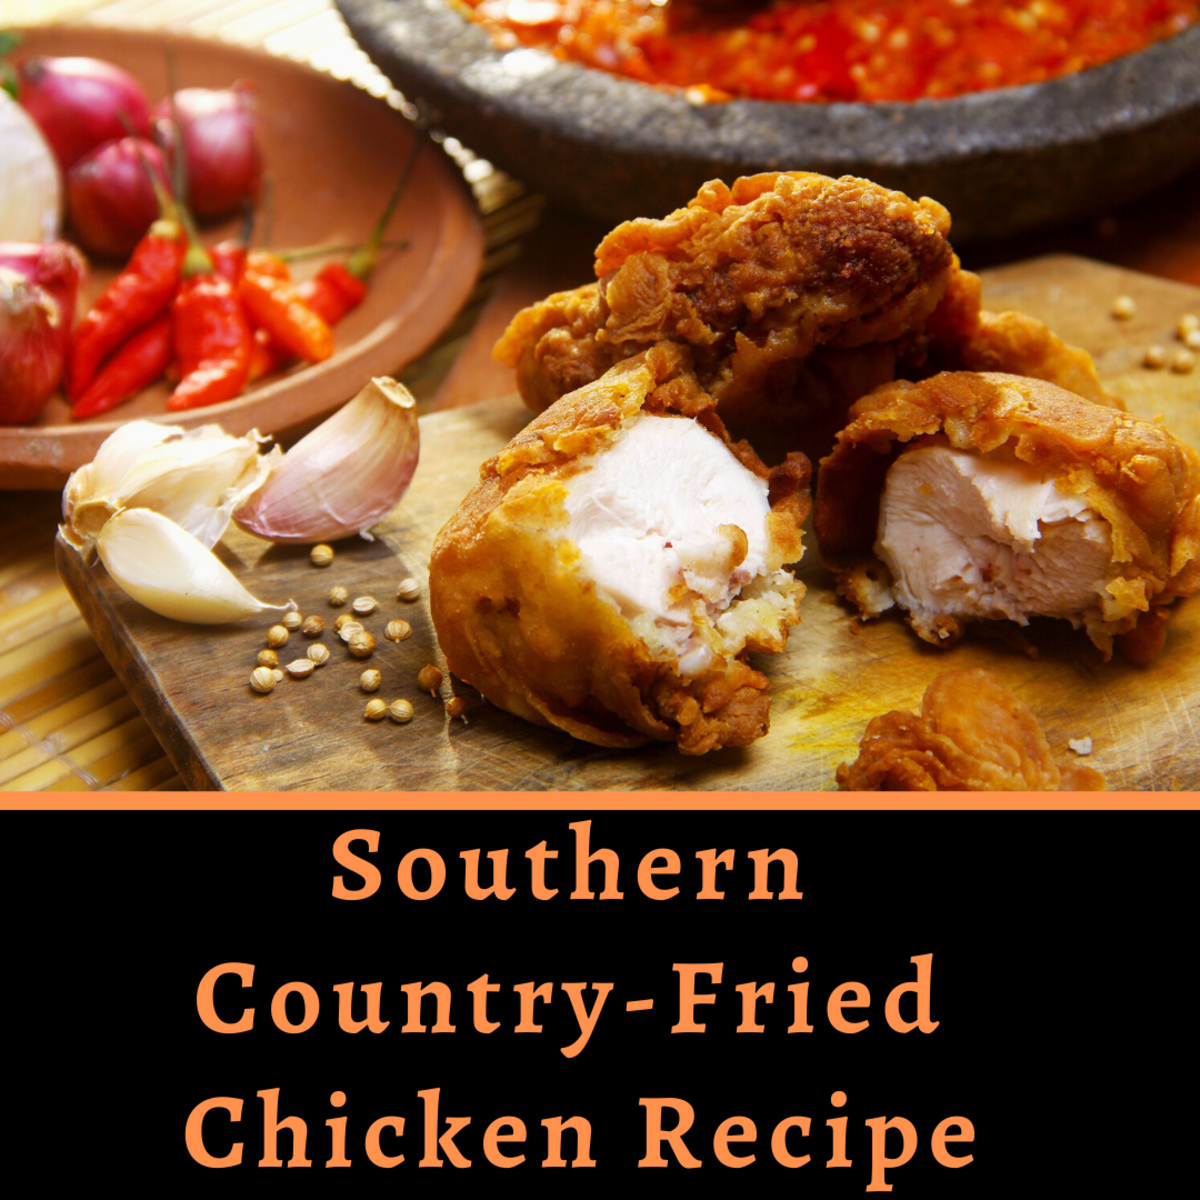 Easy to Make Southern Country-Fried Chicken Recipe